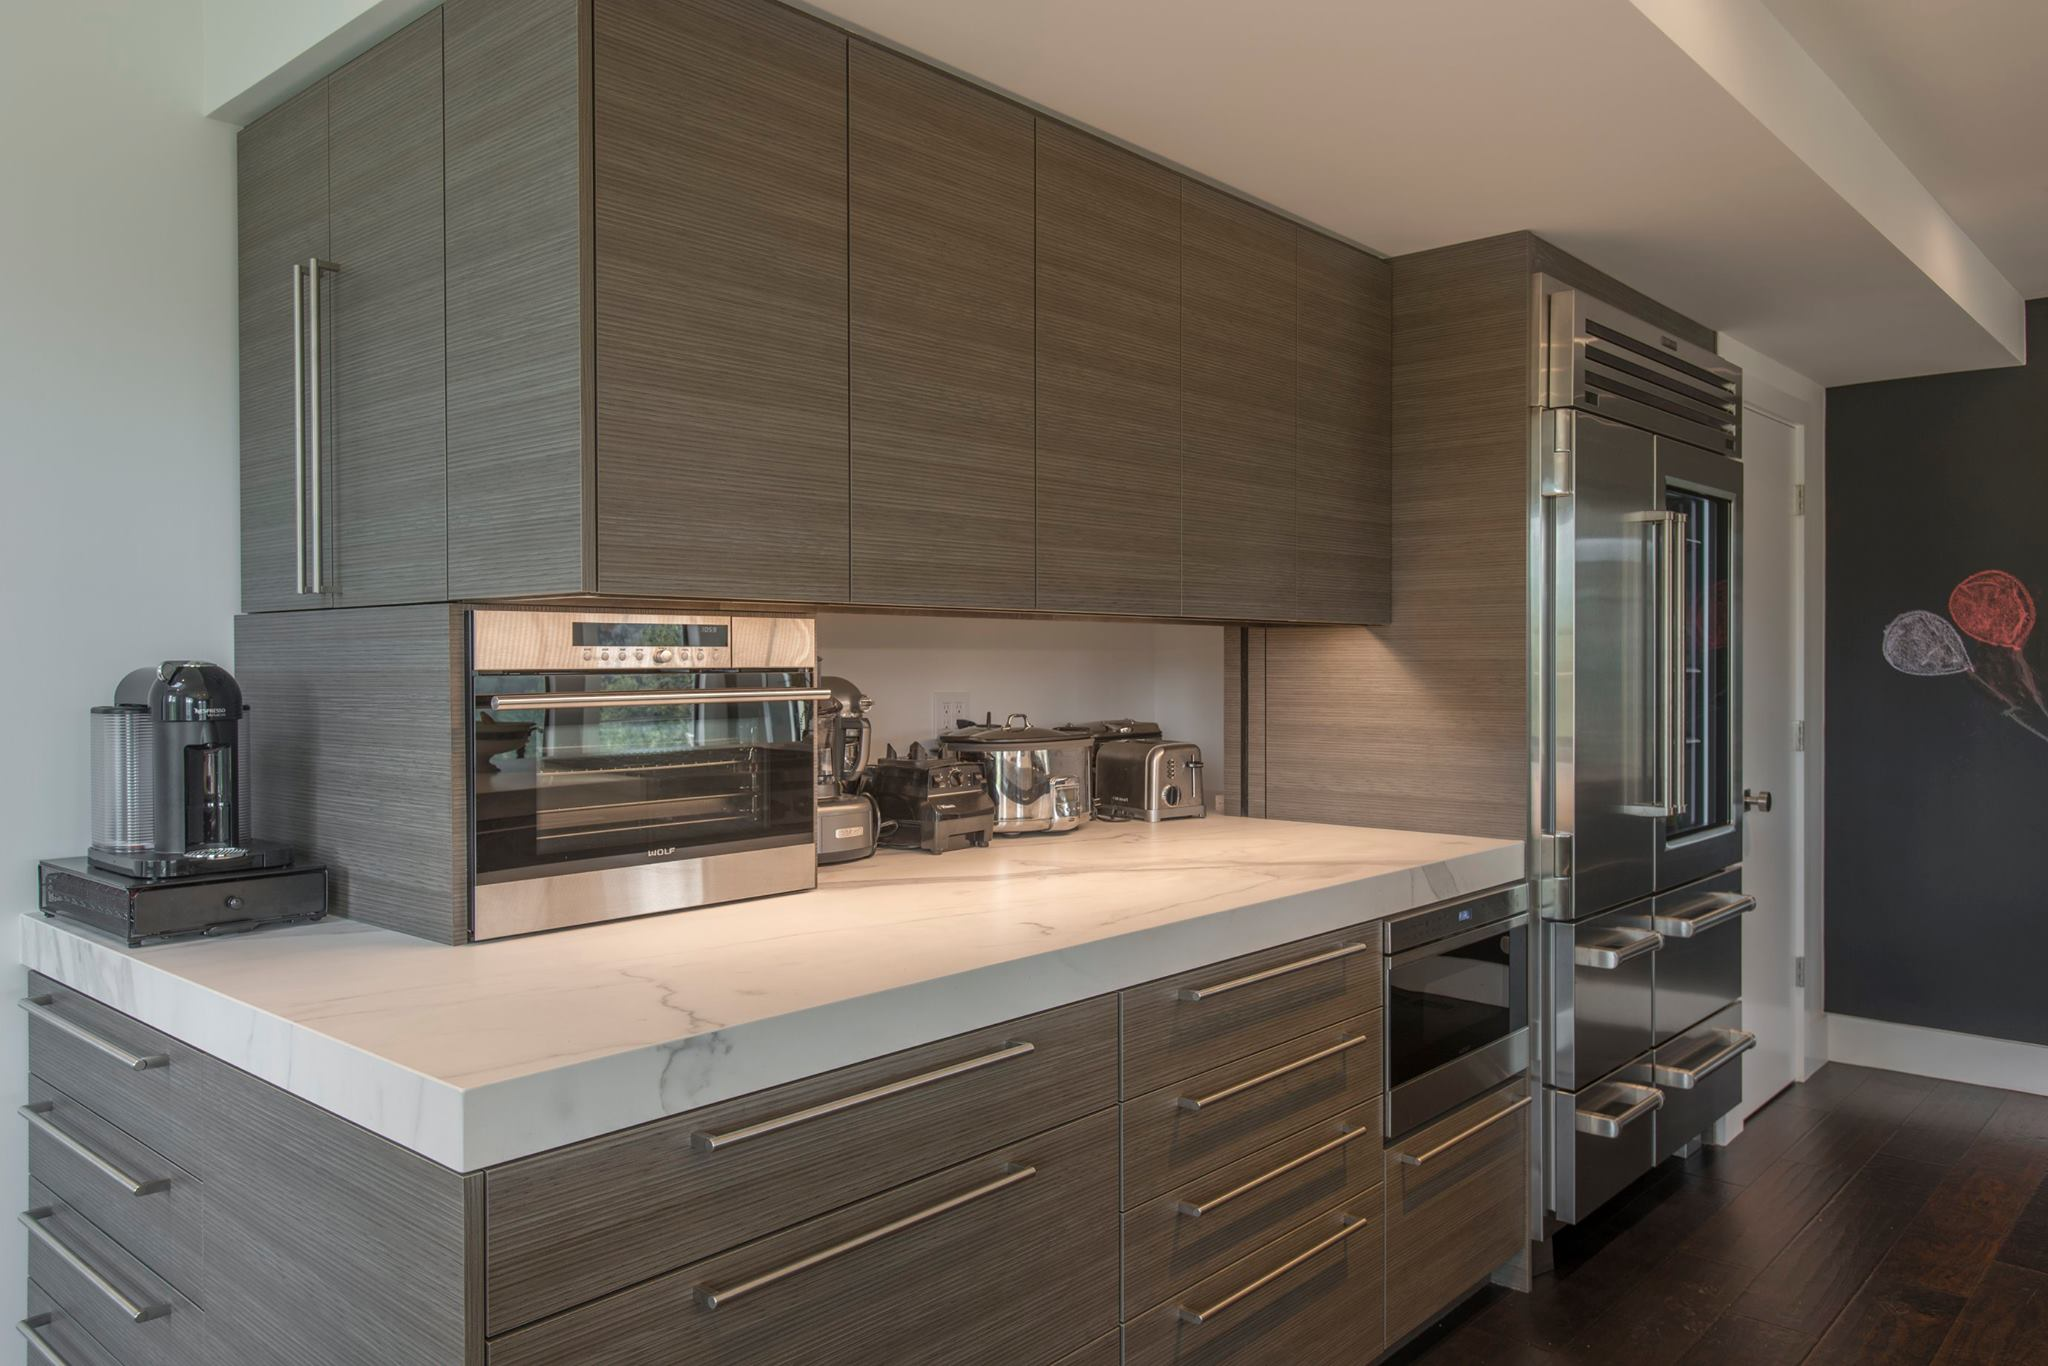 fm-distribution-neolith-classtone-estatuario-and-beton-modern-kitchen-side-coutner-with-applicances